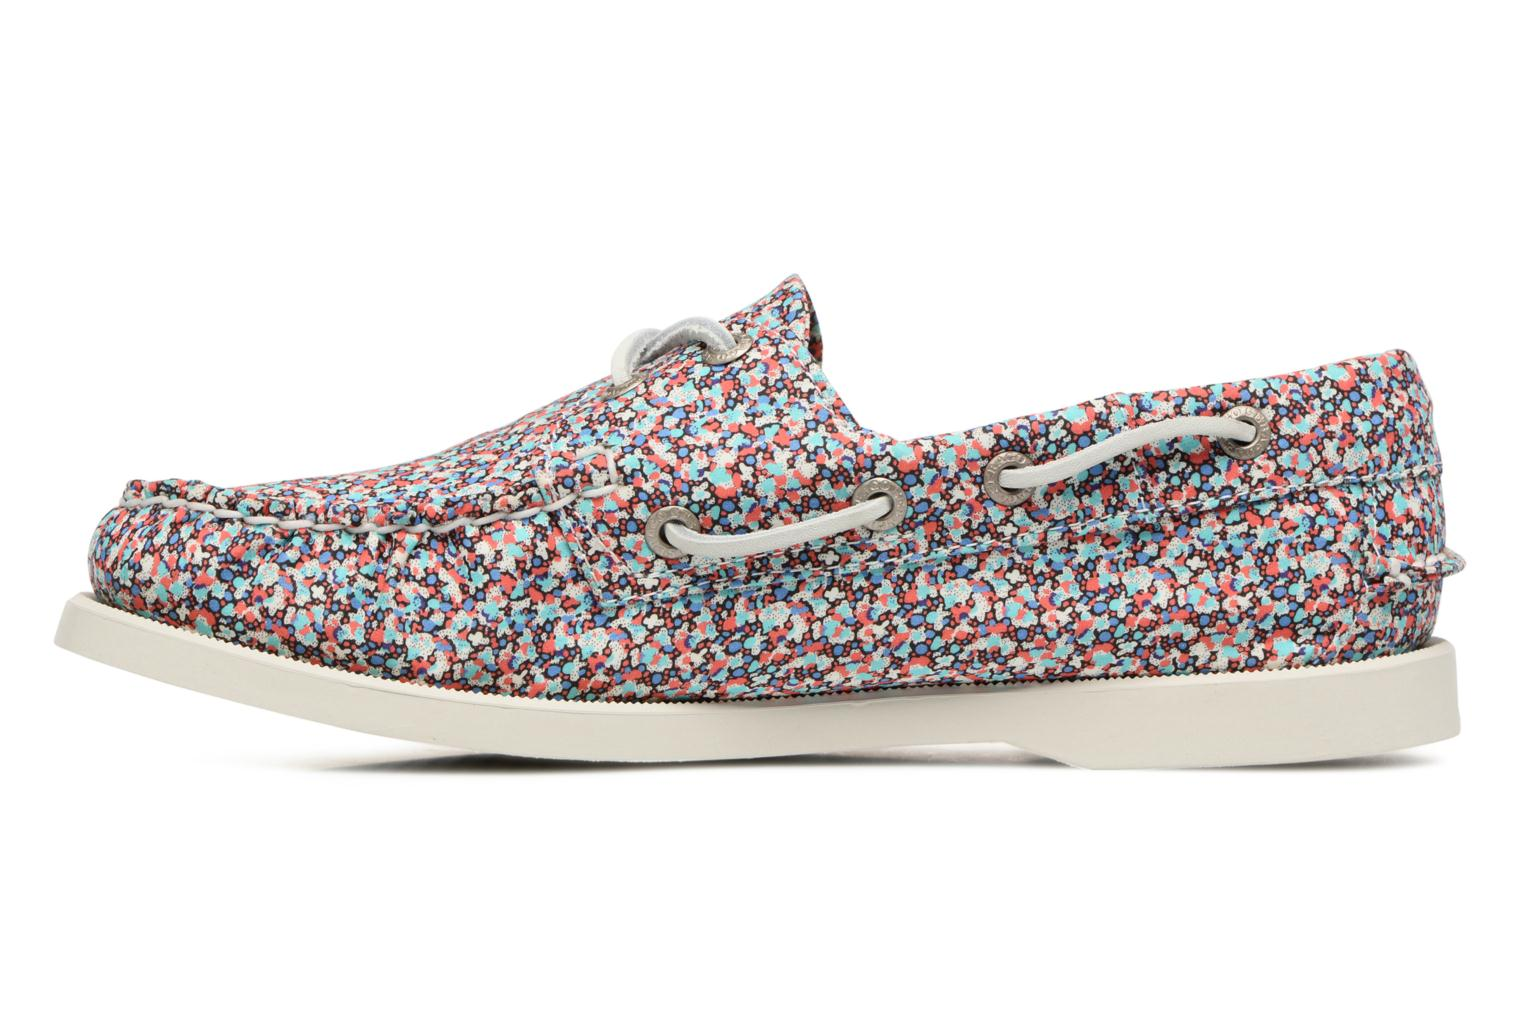 Docksides Liberty Pepper Print